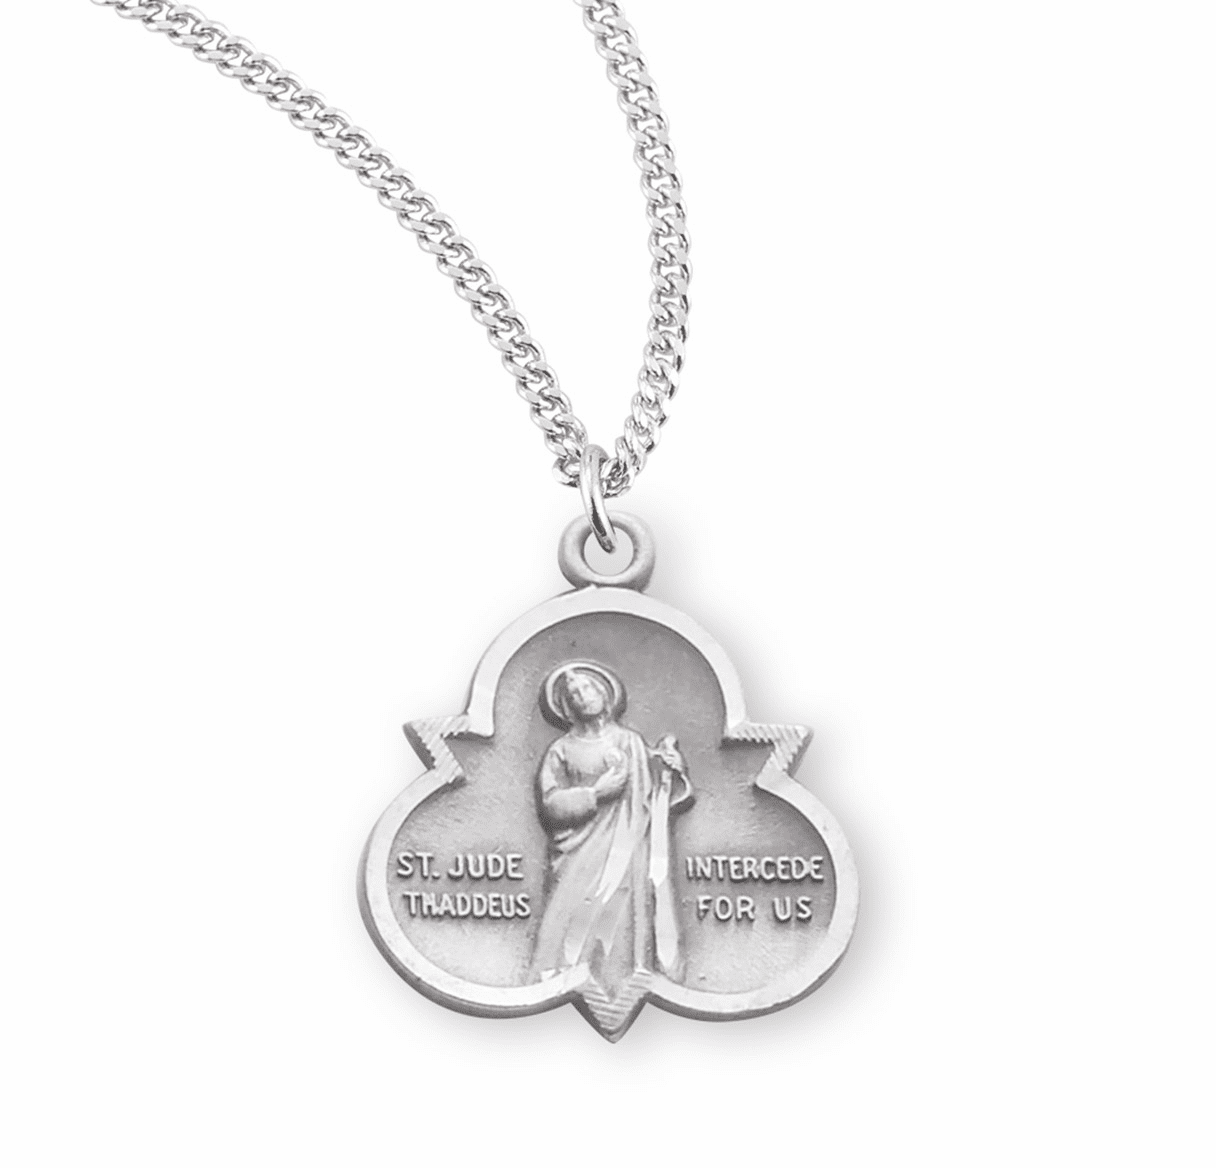 HMH Religious Trinity Sterling Silver St Jude Thaddeus Medal Necklace